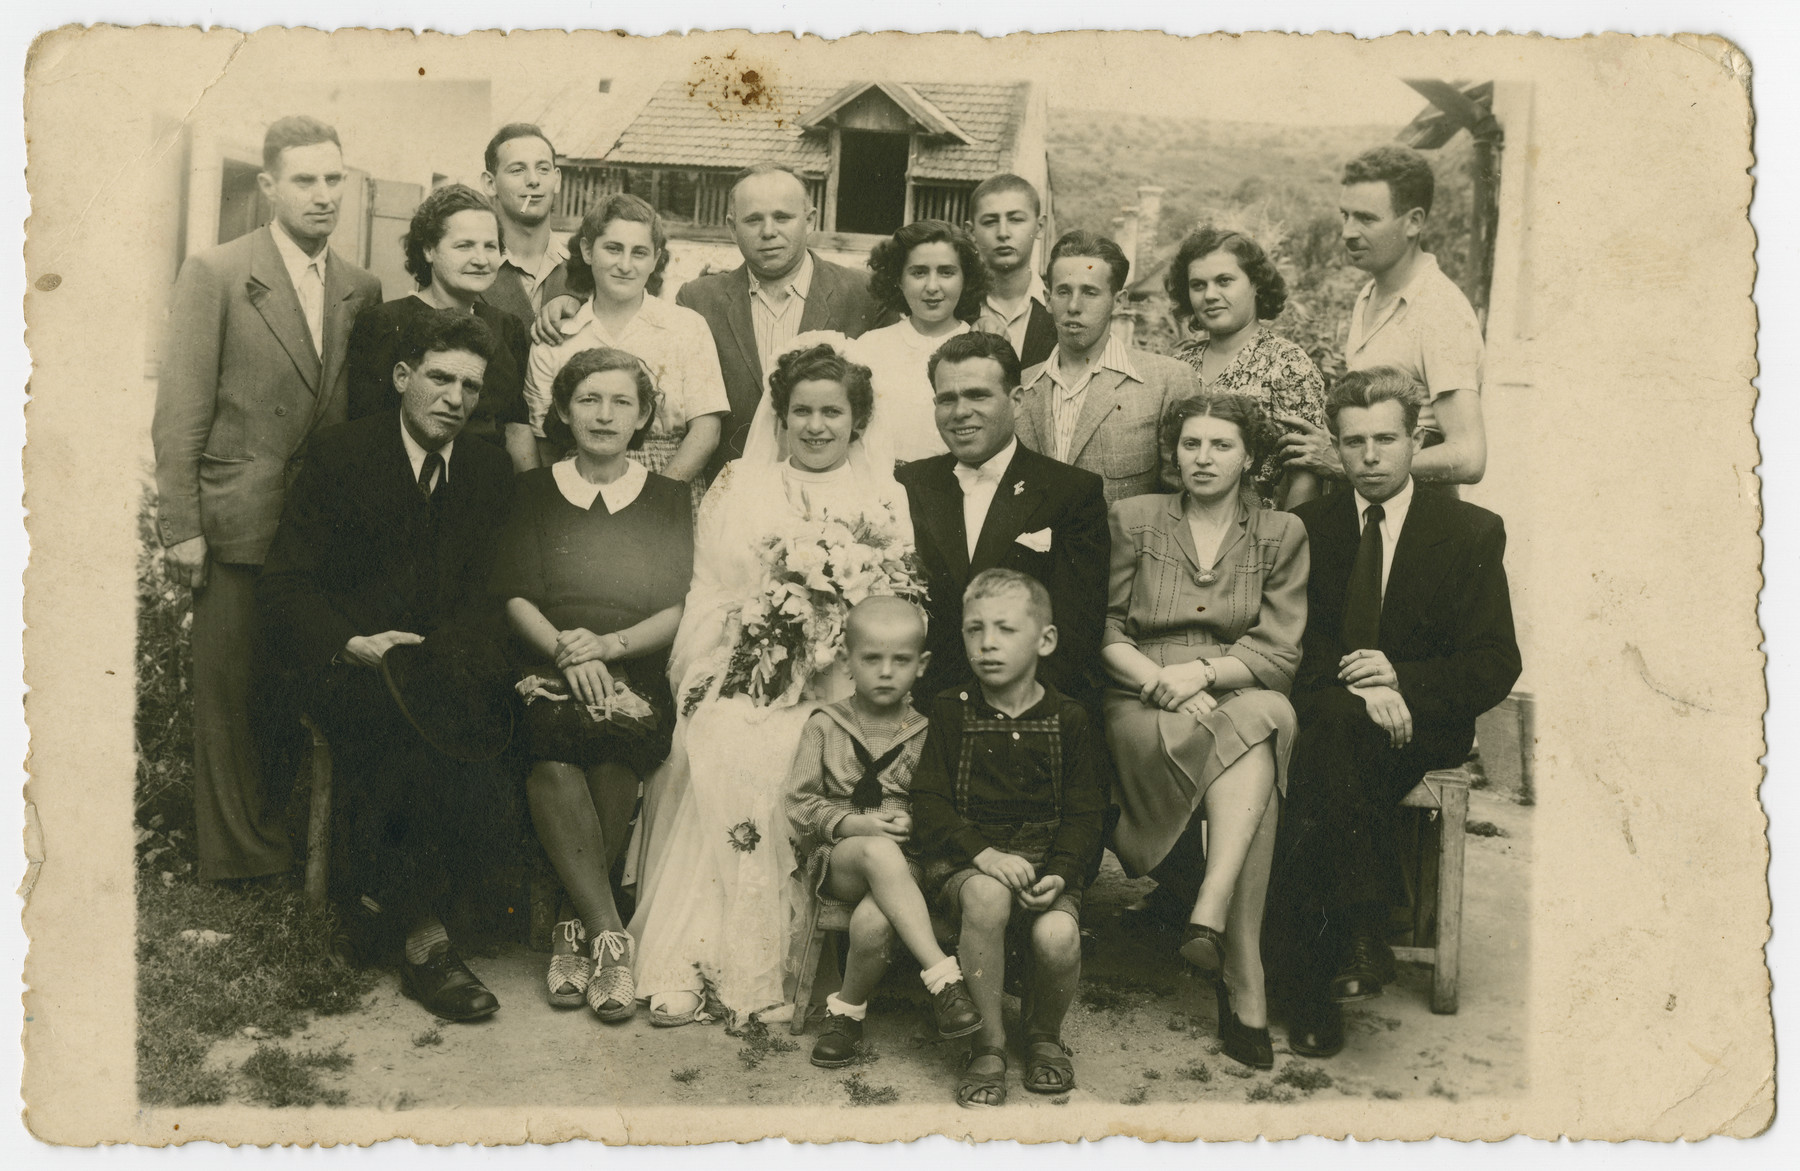 The wedding of Piri Hershkowitz and Karoly Klein.